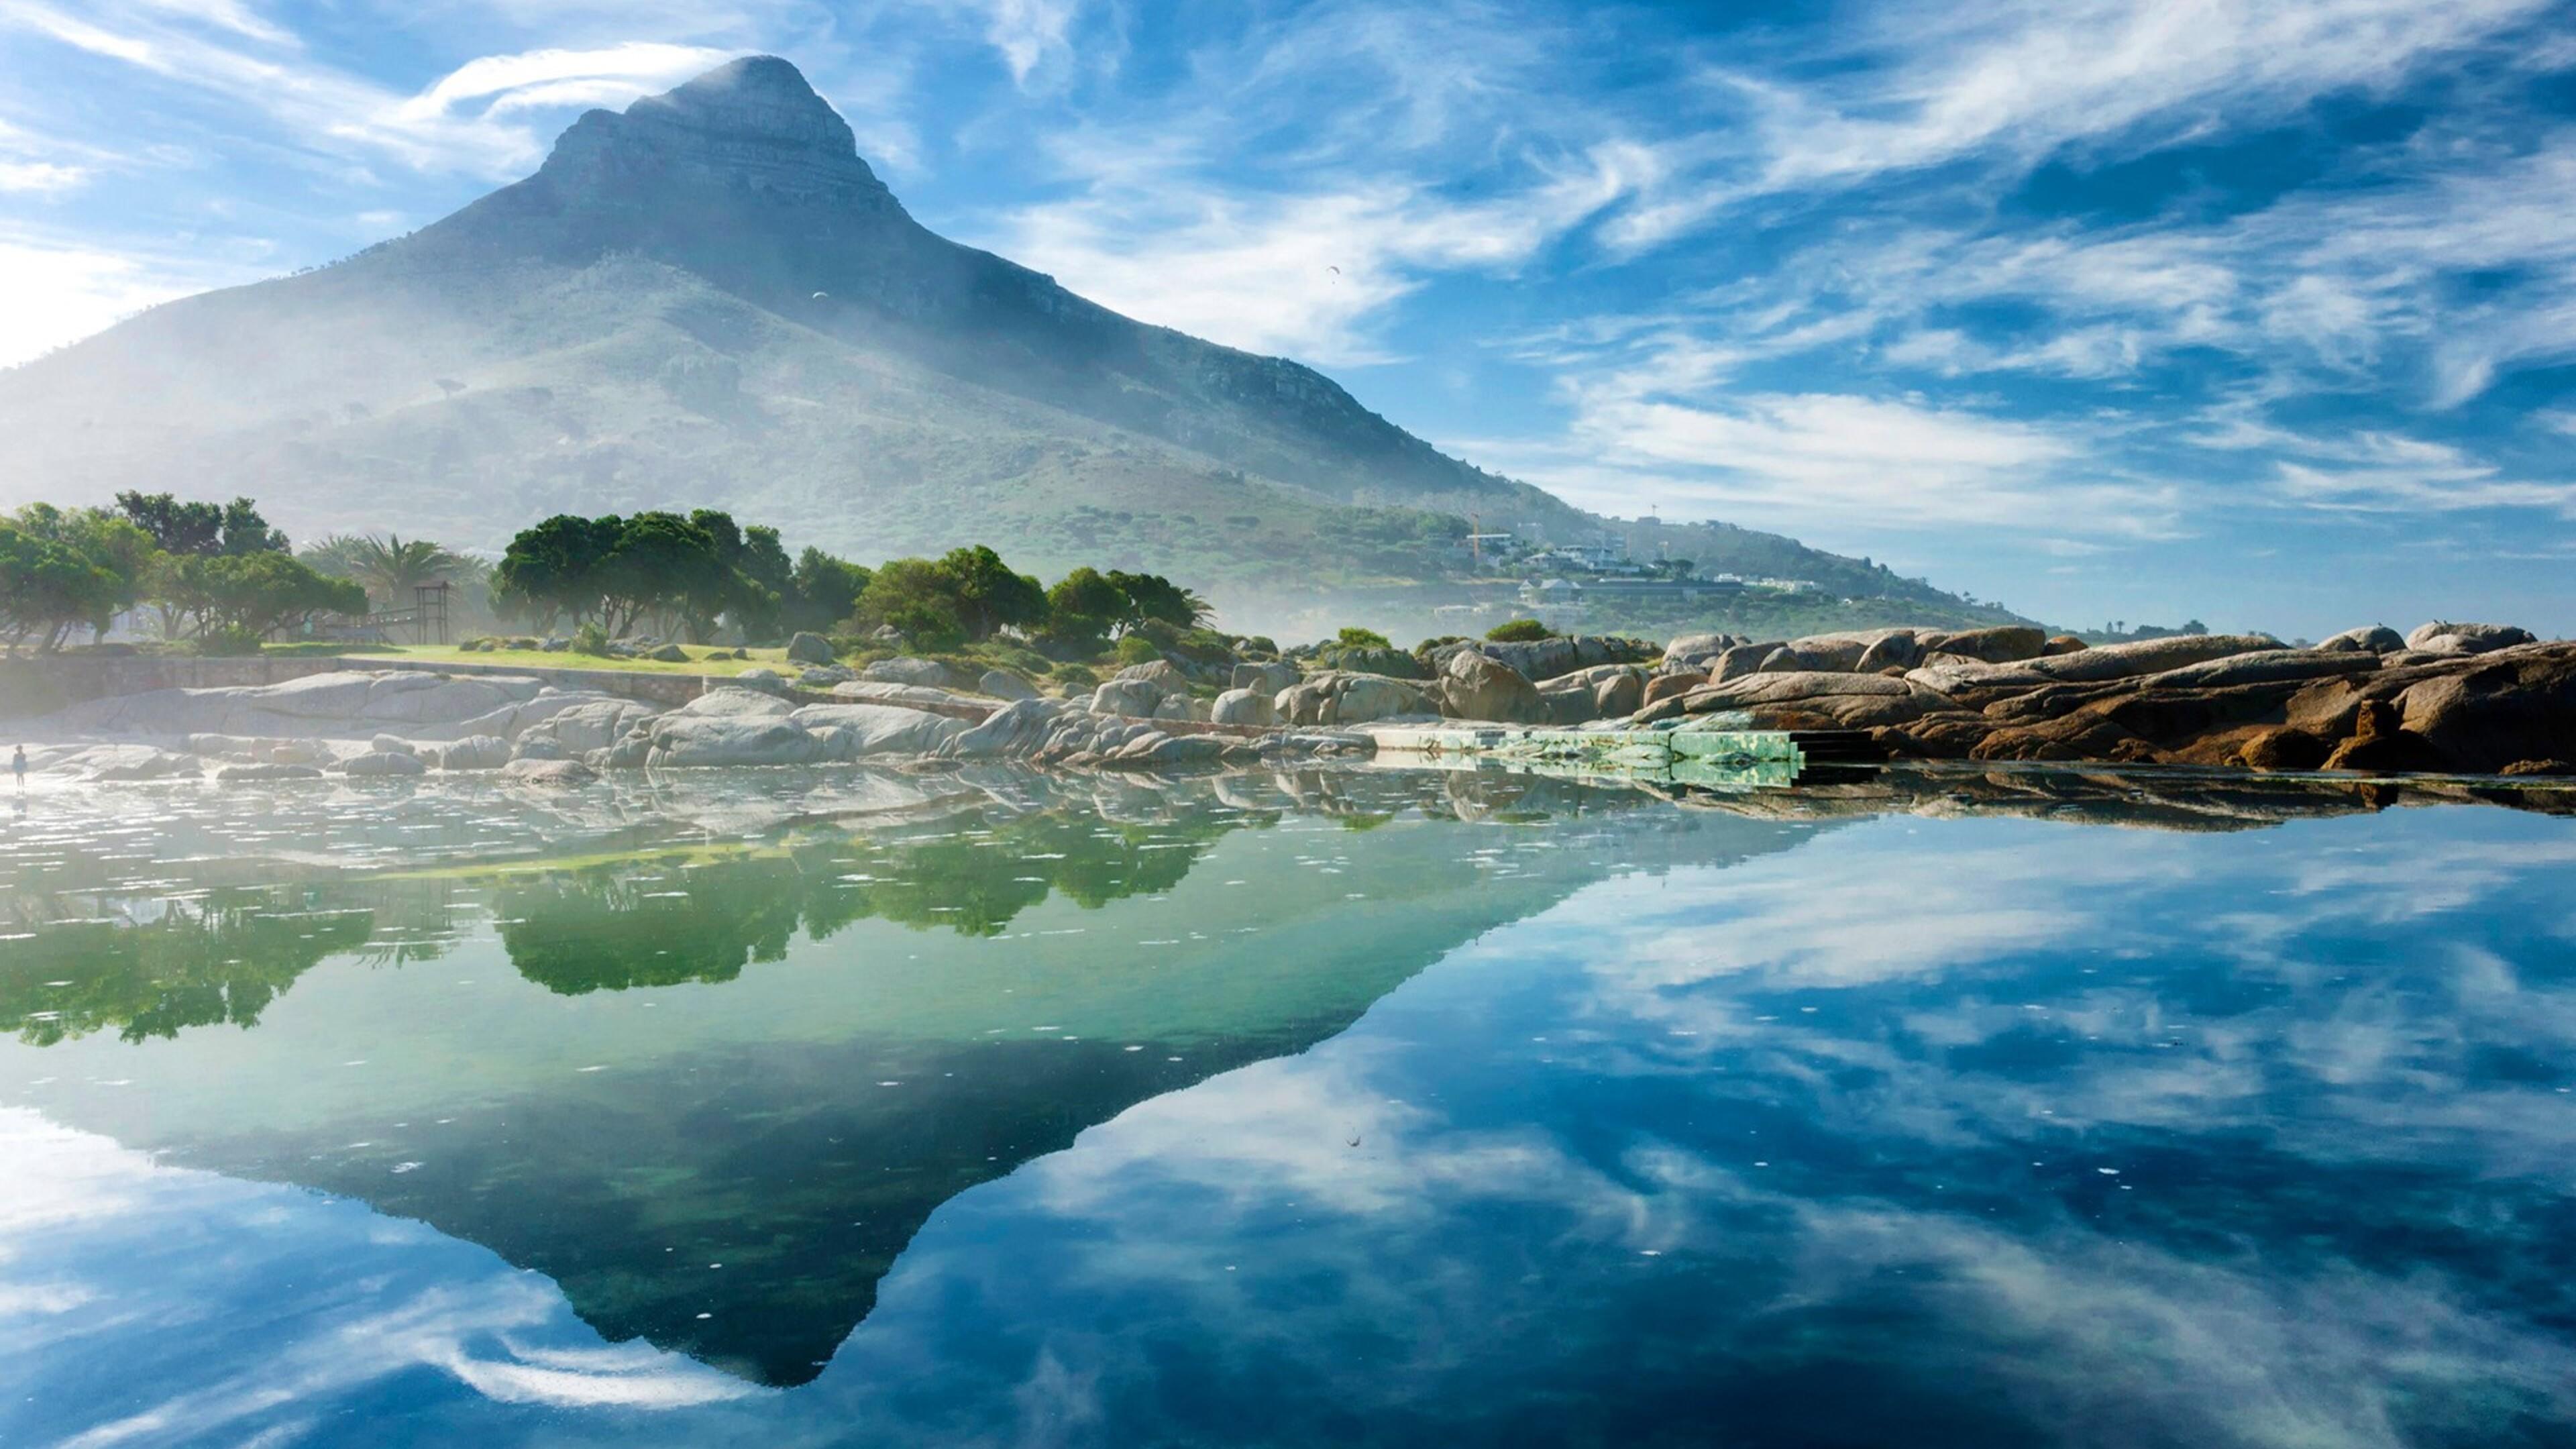 3840x2160 Ocean Reflection 4k HD 4k Wallpapers, Images ...